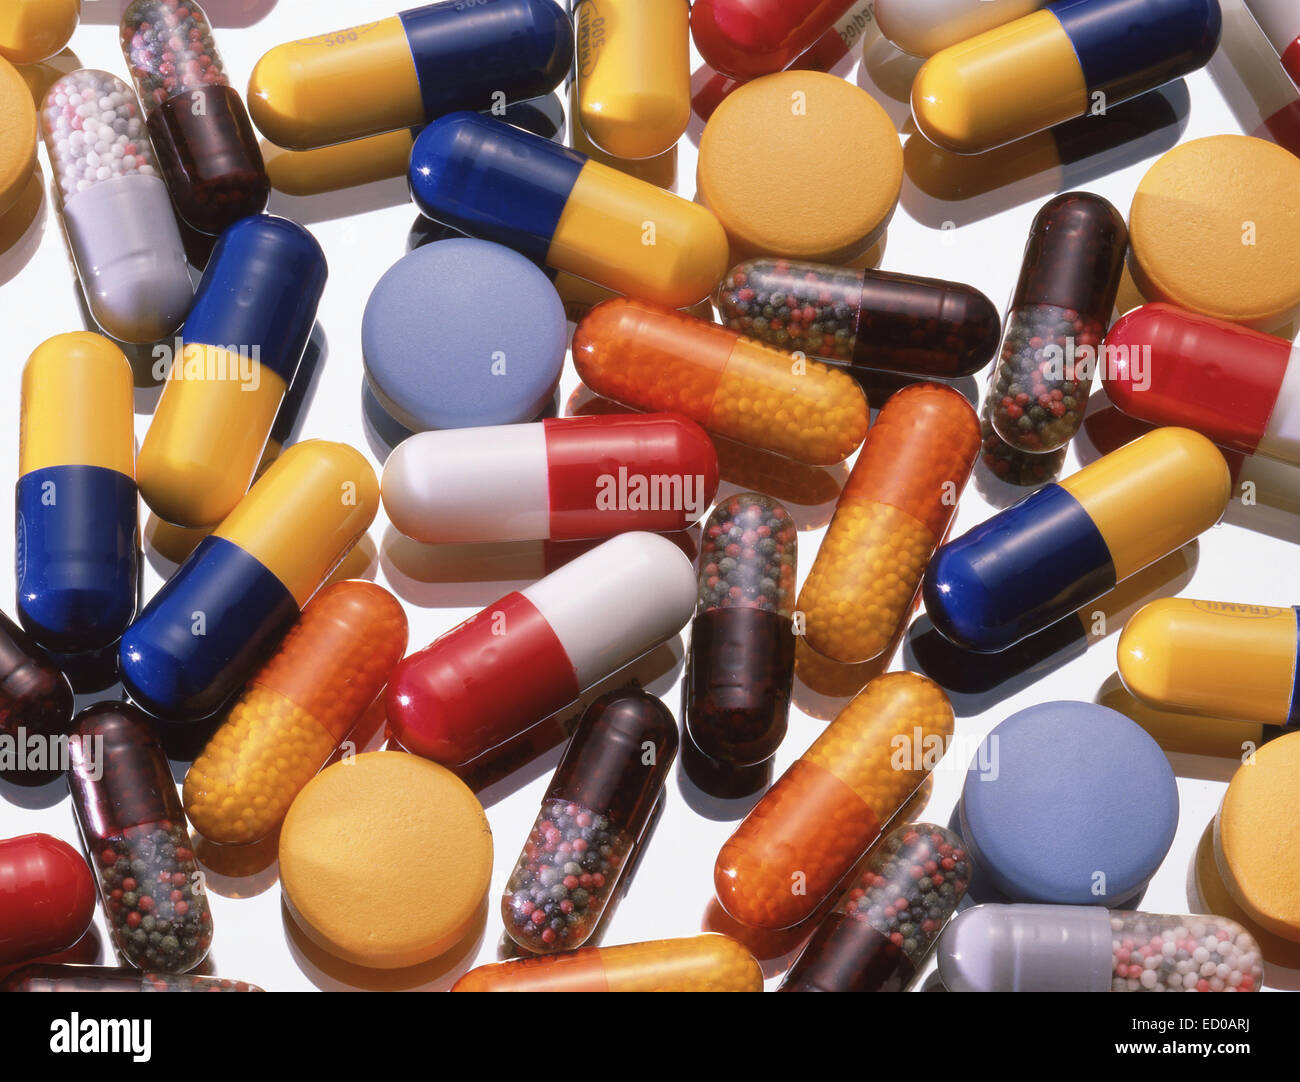 Assorted pills, capsules and tablets on glass background - Stock Image